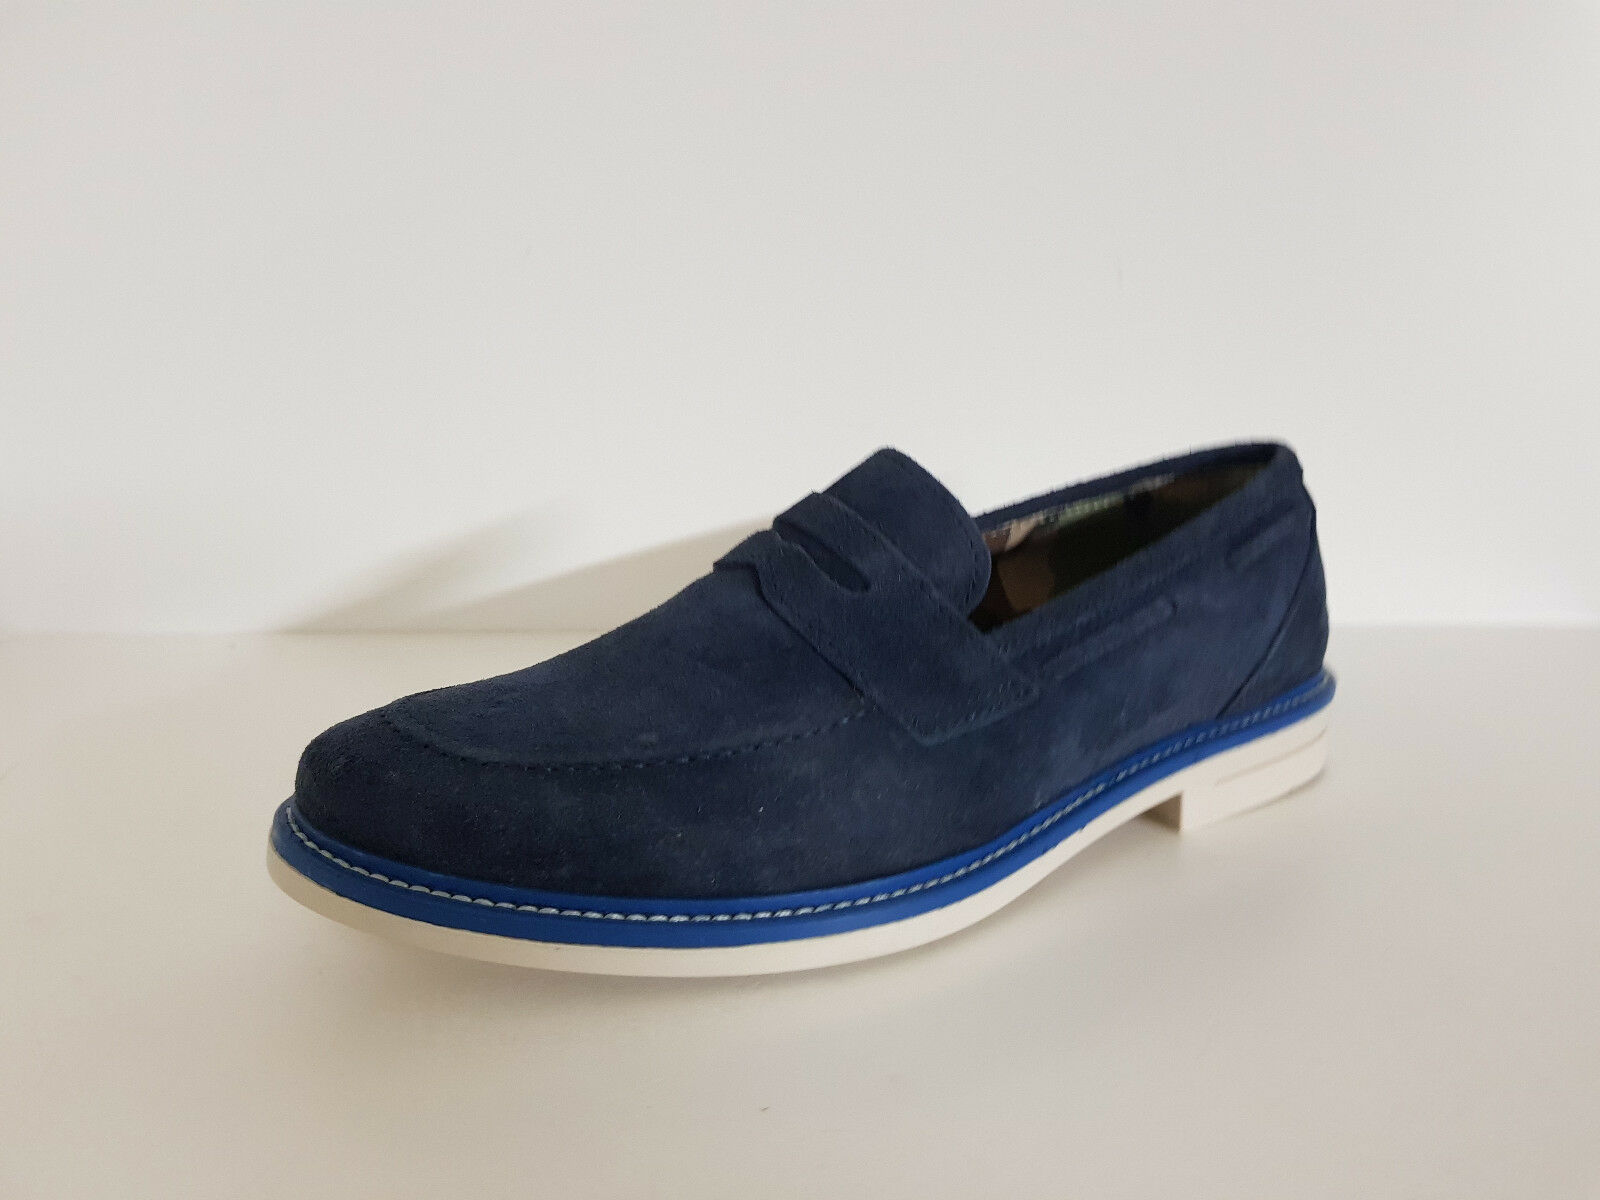 Scarpa Uomo AT.P.CO .Sconto - Blu 55%.Art. A08IT  Col. Blu - 8d6cc8